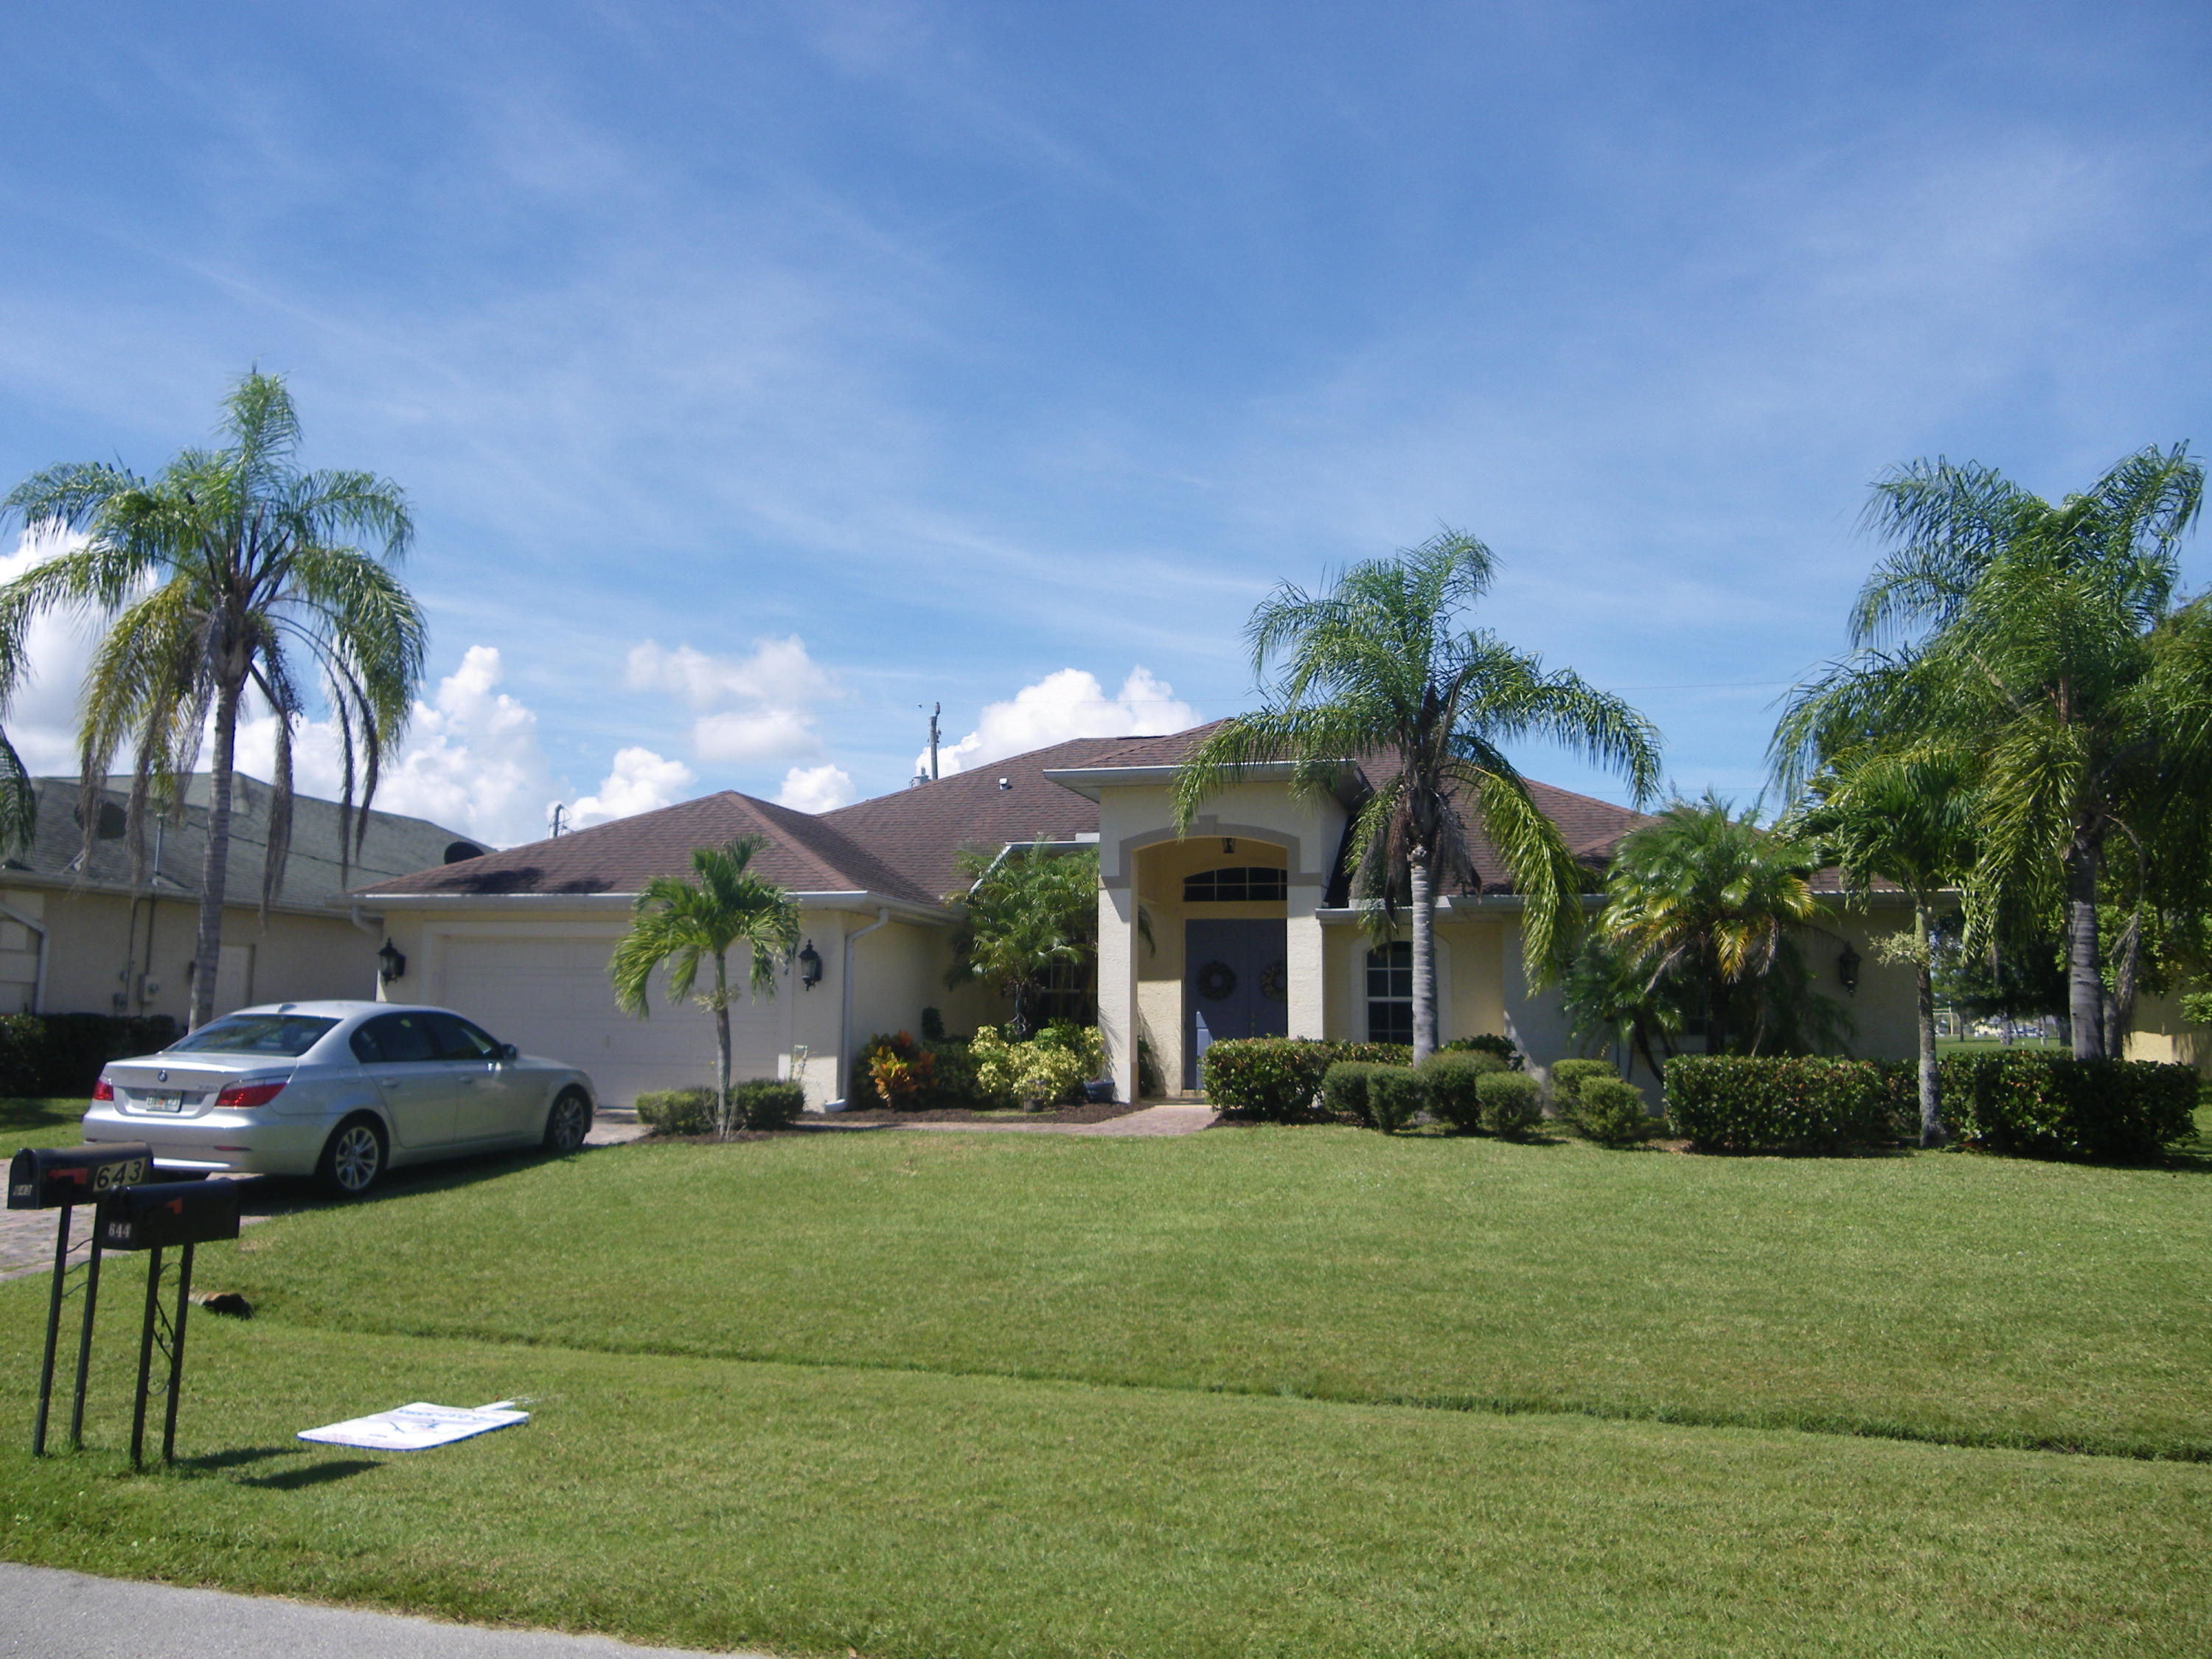 644 SE Stow Terrace, Port Saint Lucie, Florida